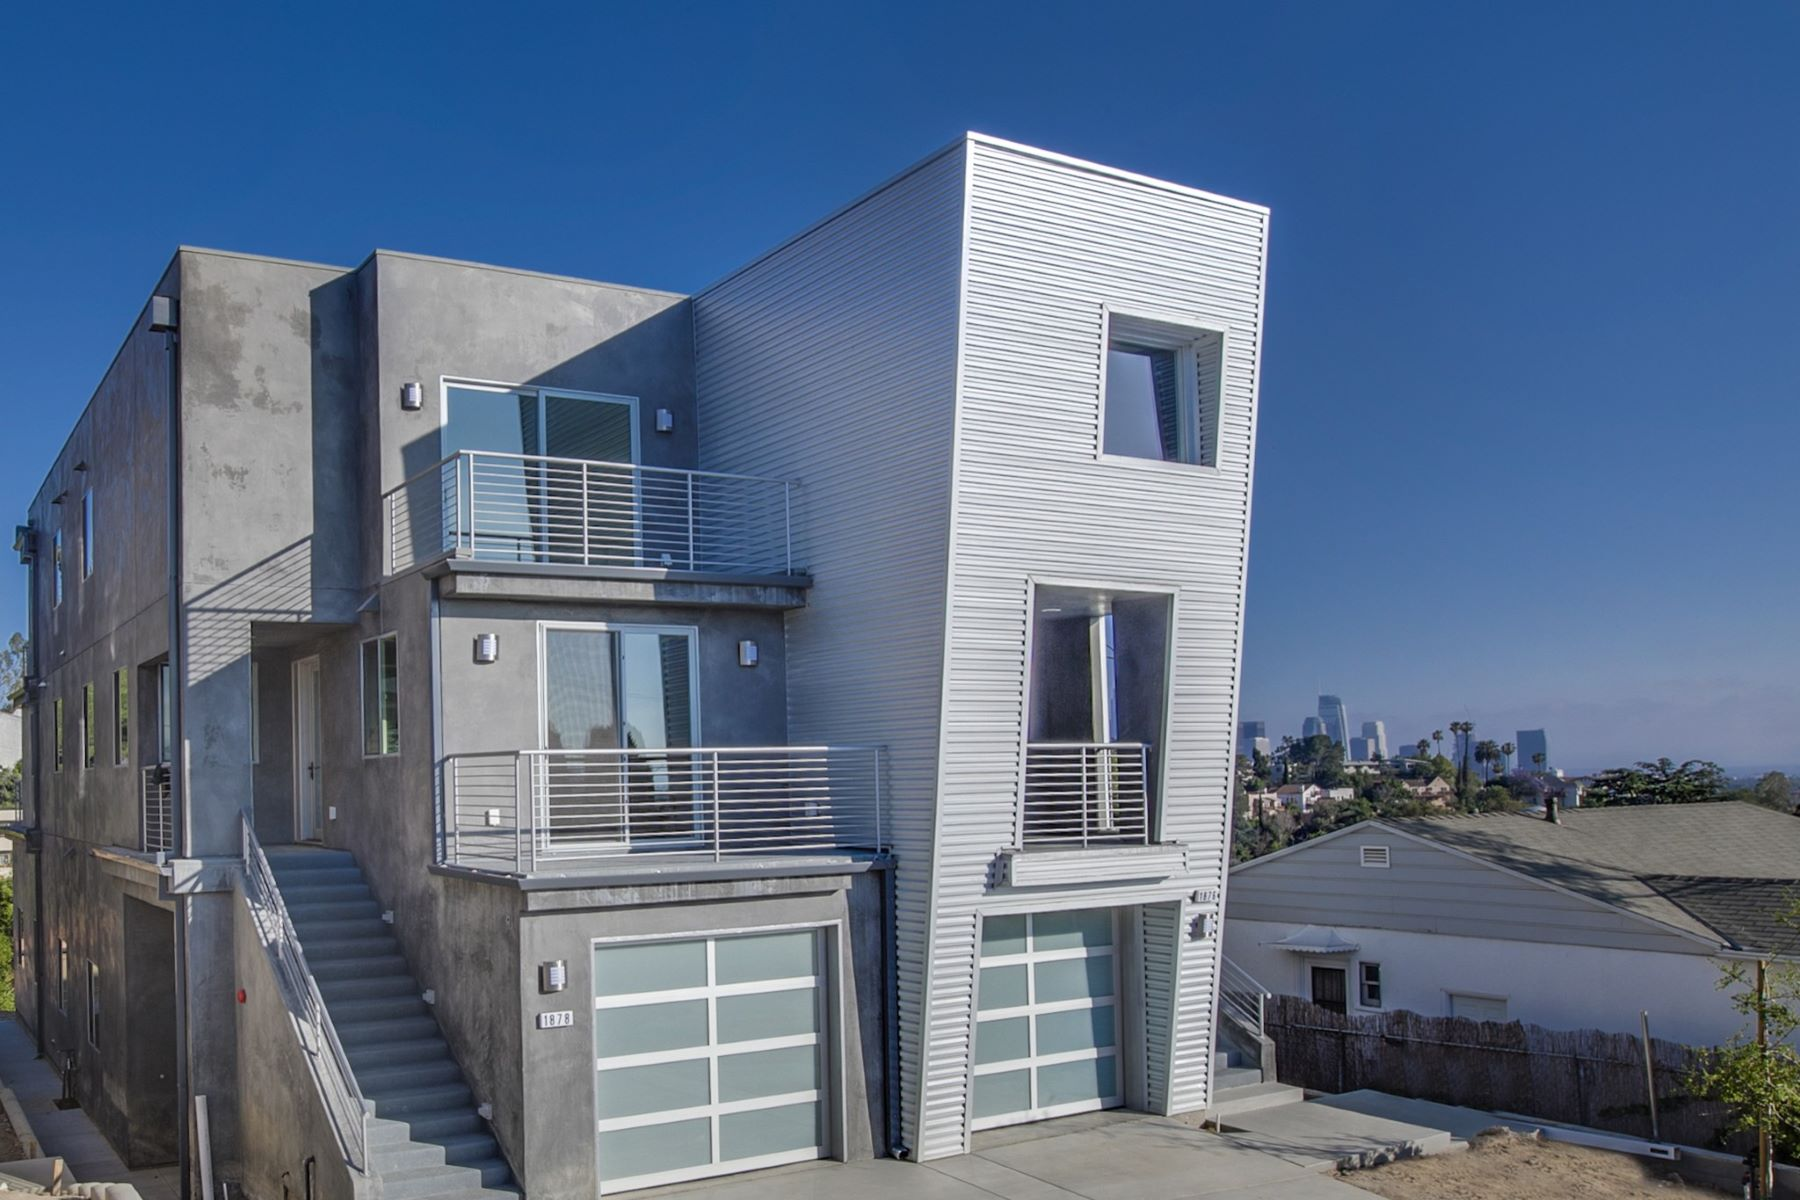 Townhouse for Sale at 1880 Lucretia Ave Los Angeles, California 90026 United States